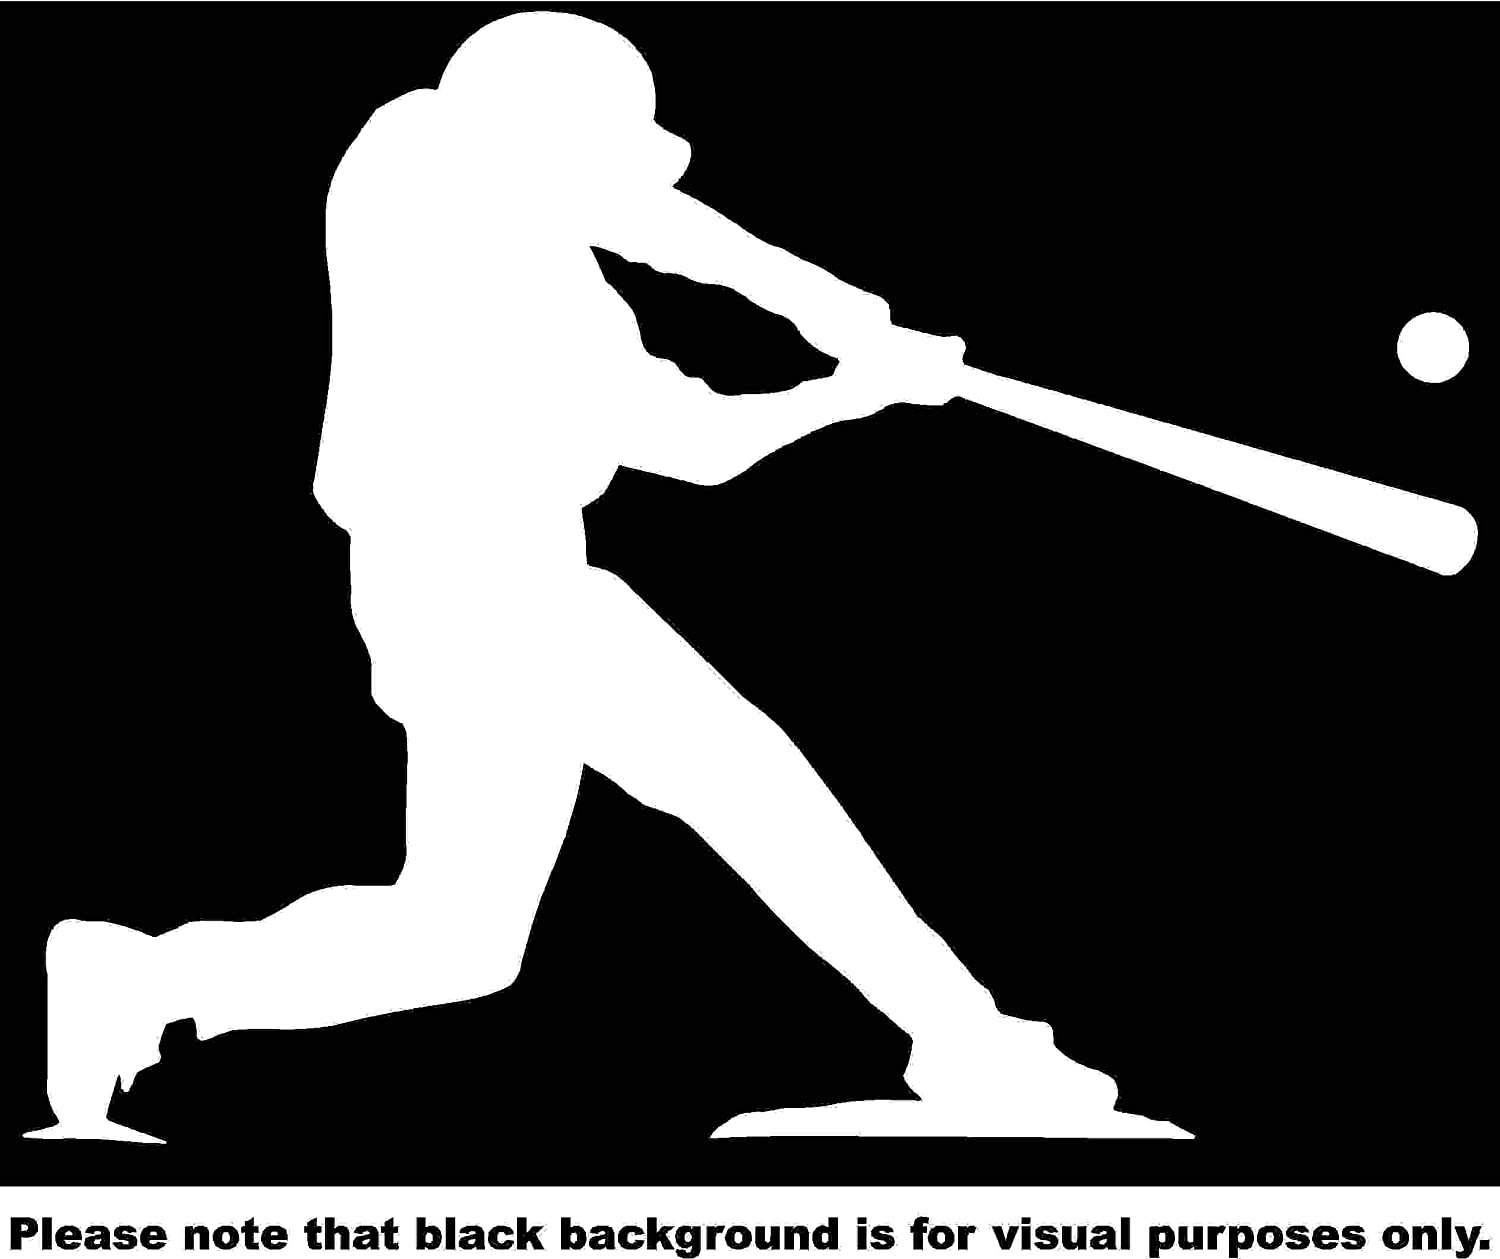 Baseball Player at Bat Silhouette Car Window Tumblers Wall Decal Sticker Vinyl Laptops Cellphones Phones Tablets Ipads Helmets Motorcycles Computer Towers V and T Gifts